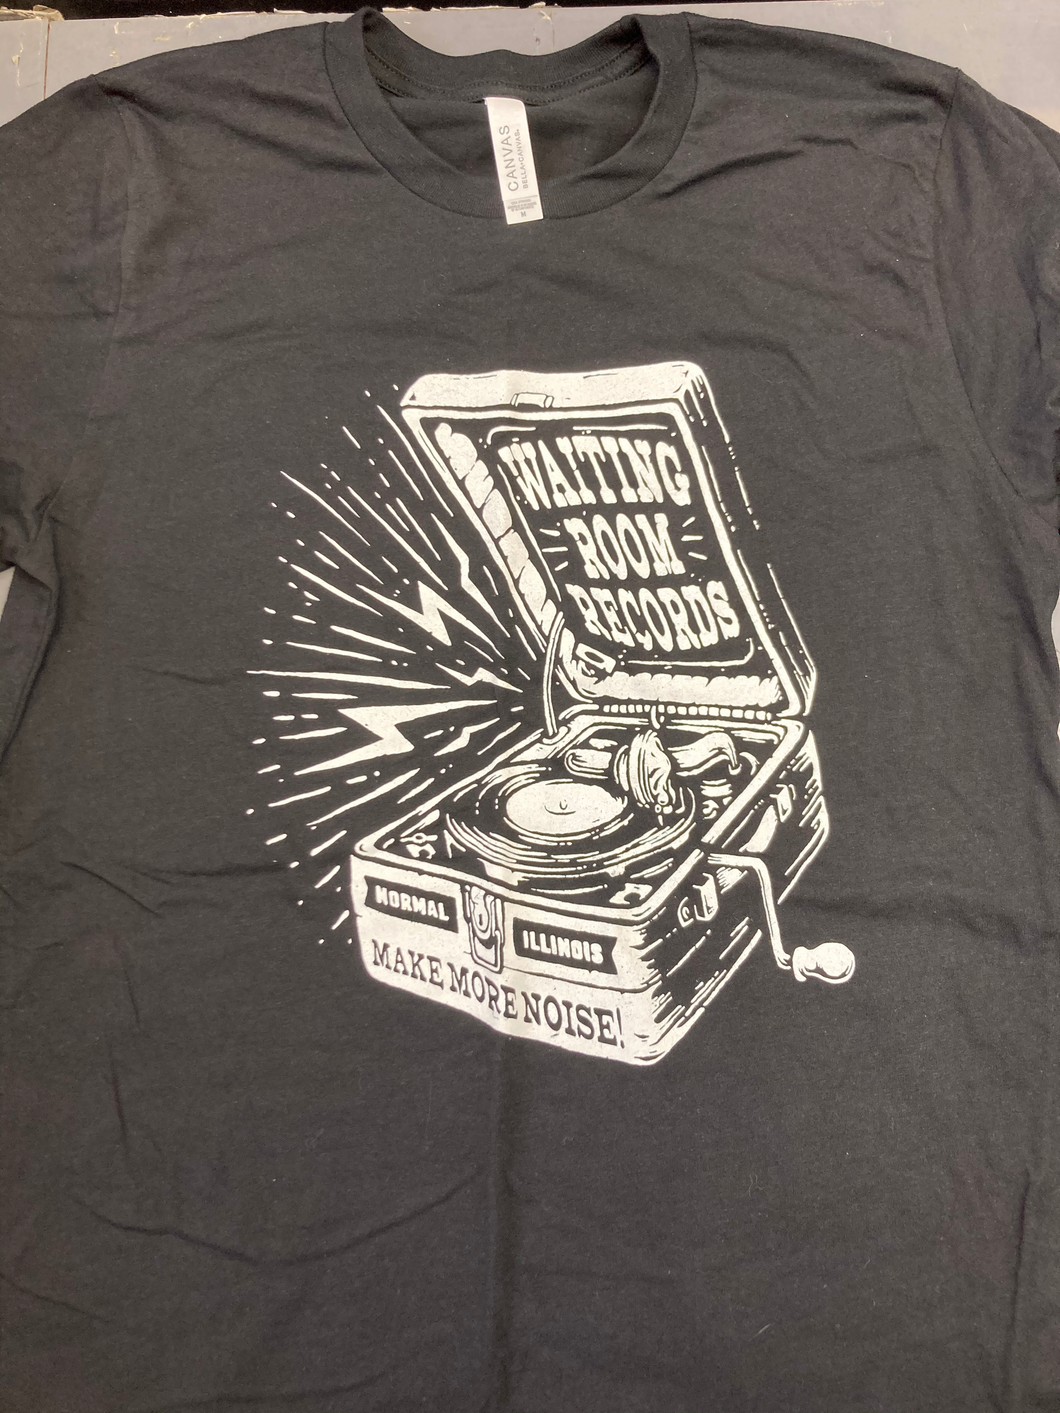 Waiting Room Records T-shirt- Turntable Design